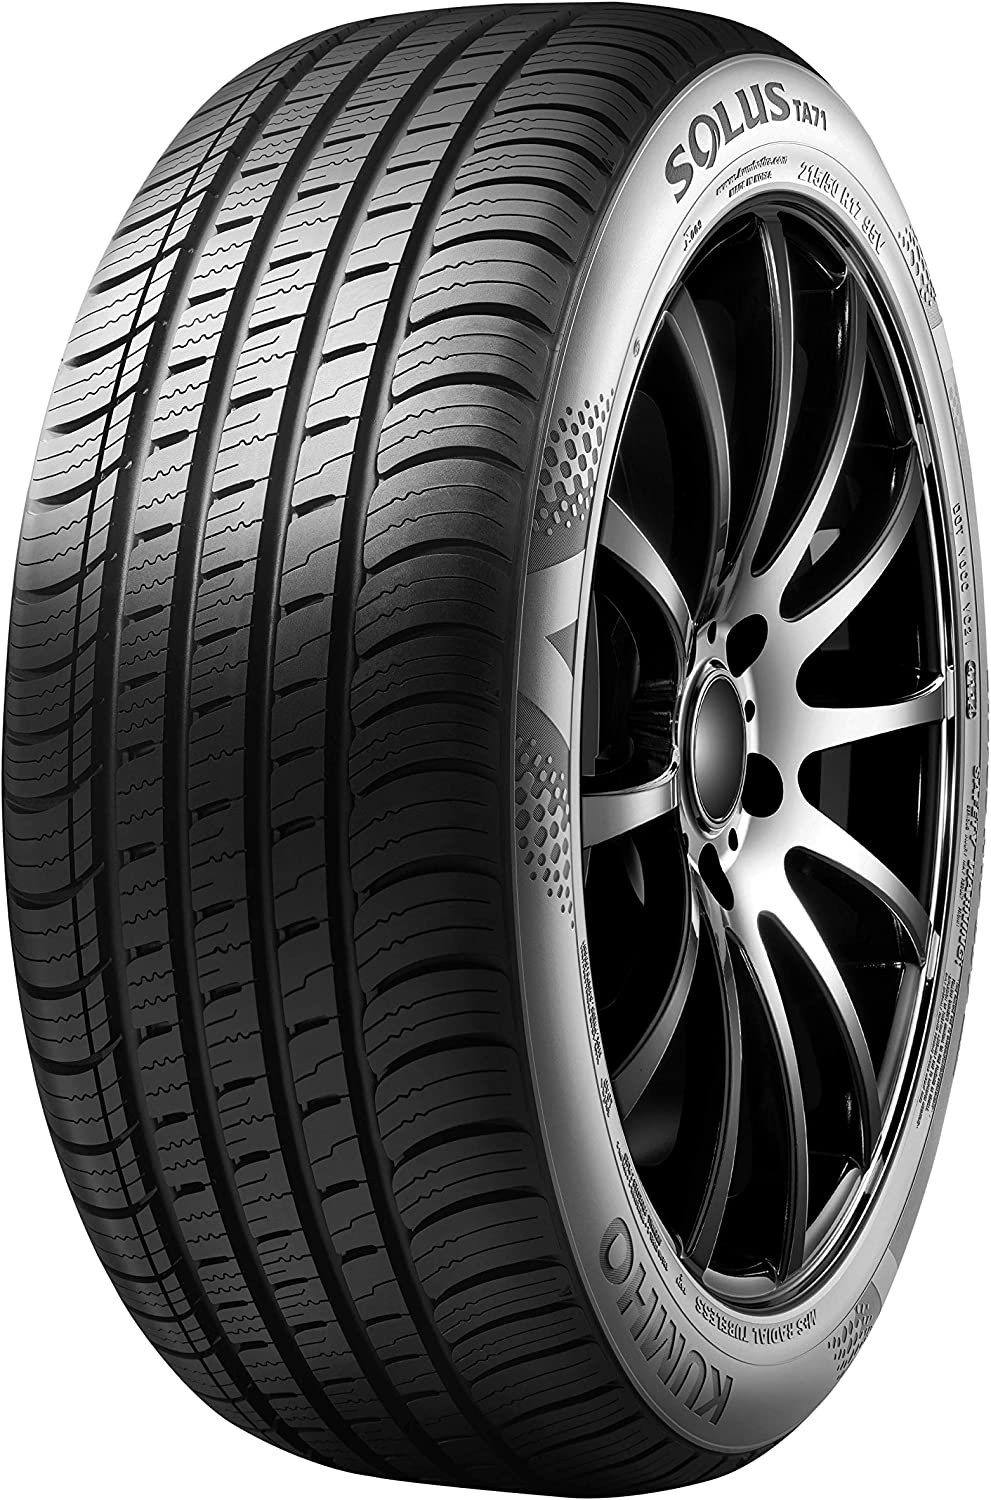 225//50ZR18 95W Kumho Solus TA71 All-Season Tire